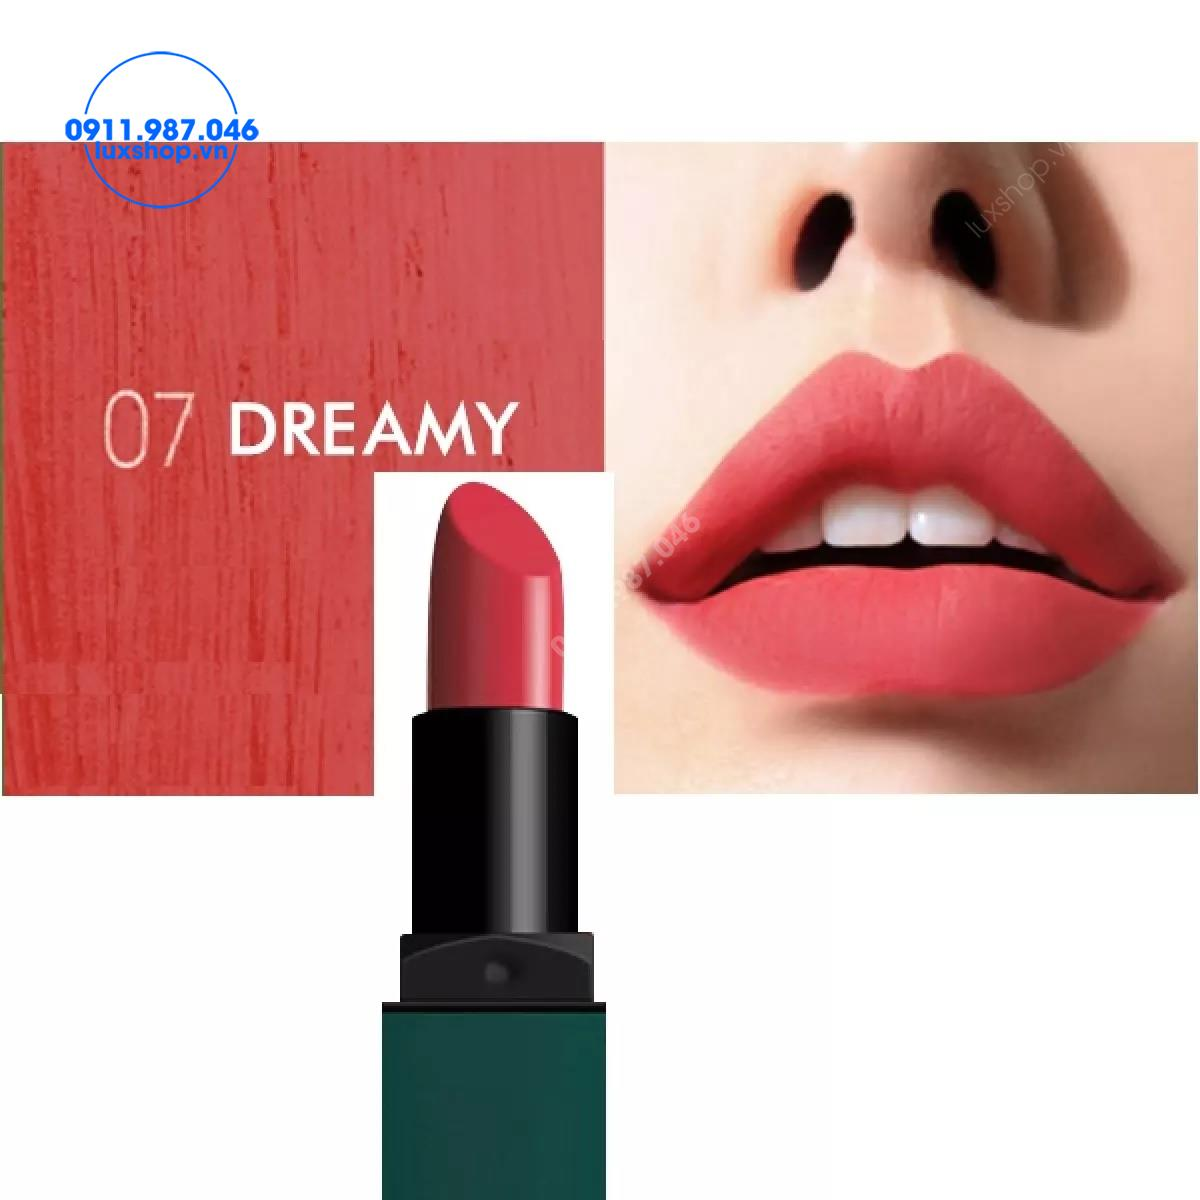 son-bbia-last-lipstick-green-series-07-dreamy-mau-do-hong-san-ho-vo-xanh-chinh-hang-han-quoc